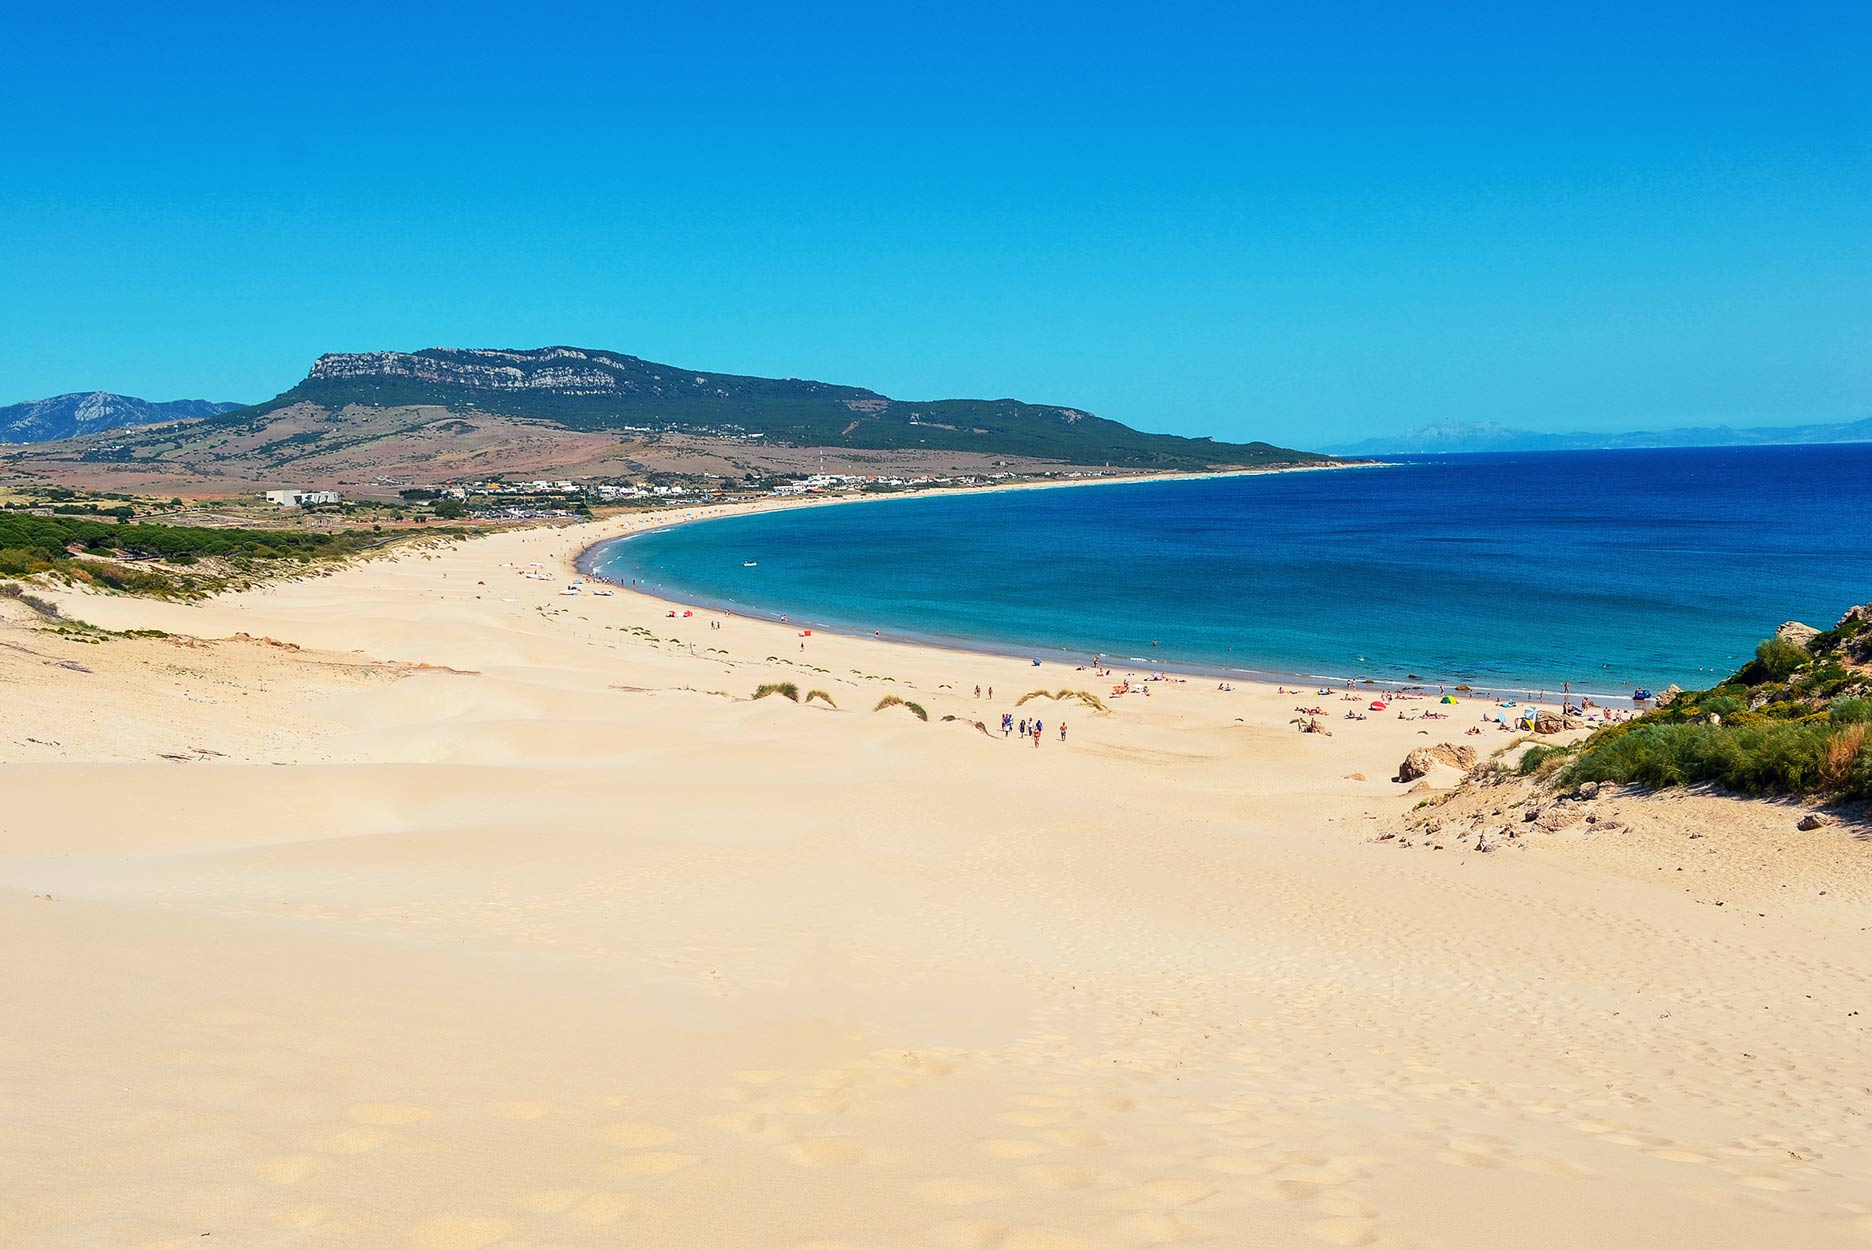 mejores playas espana playa bolonia - The best beaches in Spain to visit during the summer